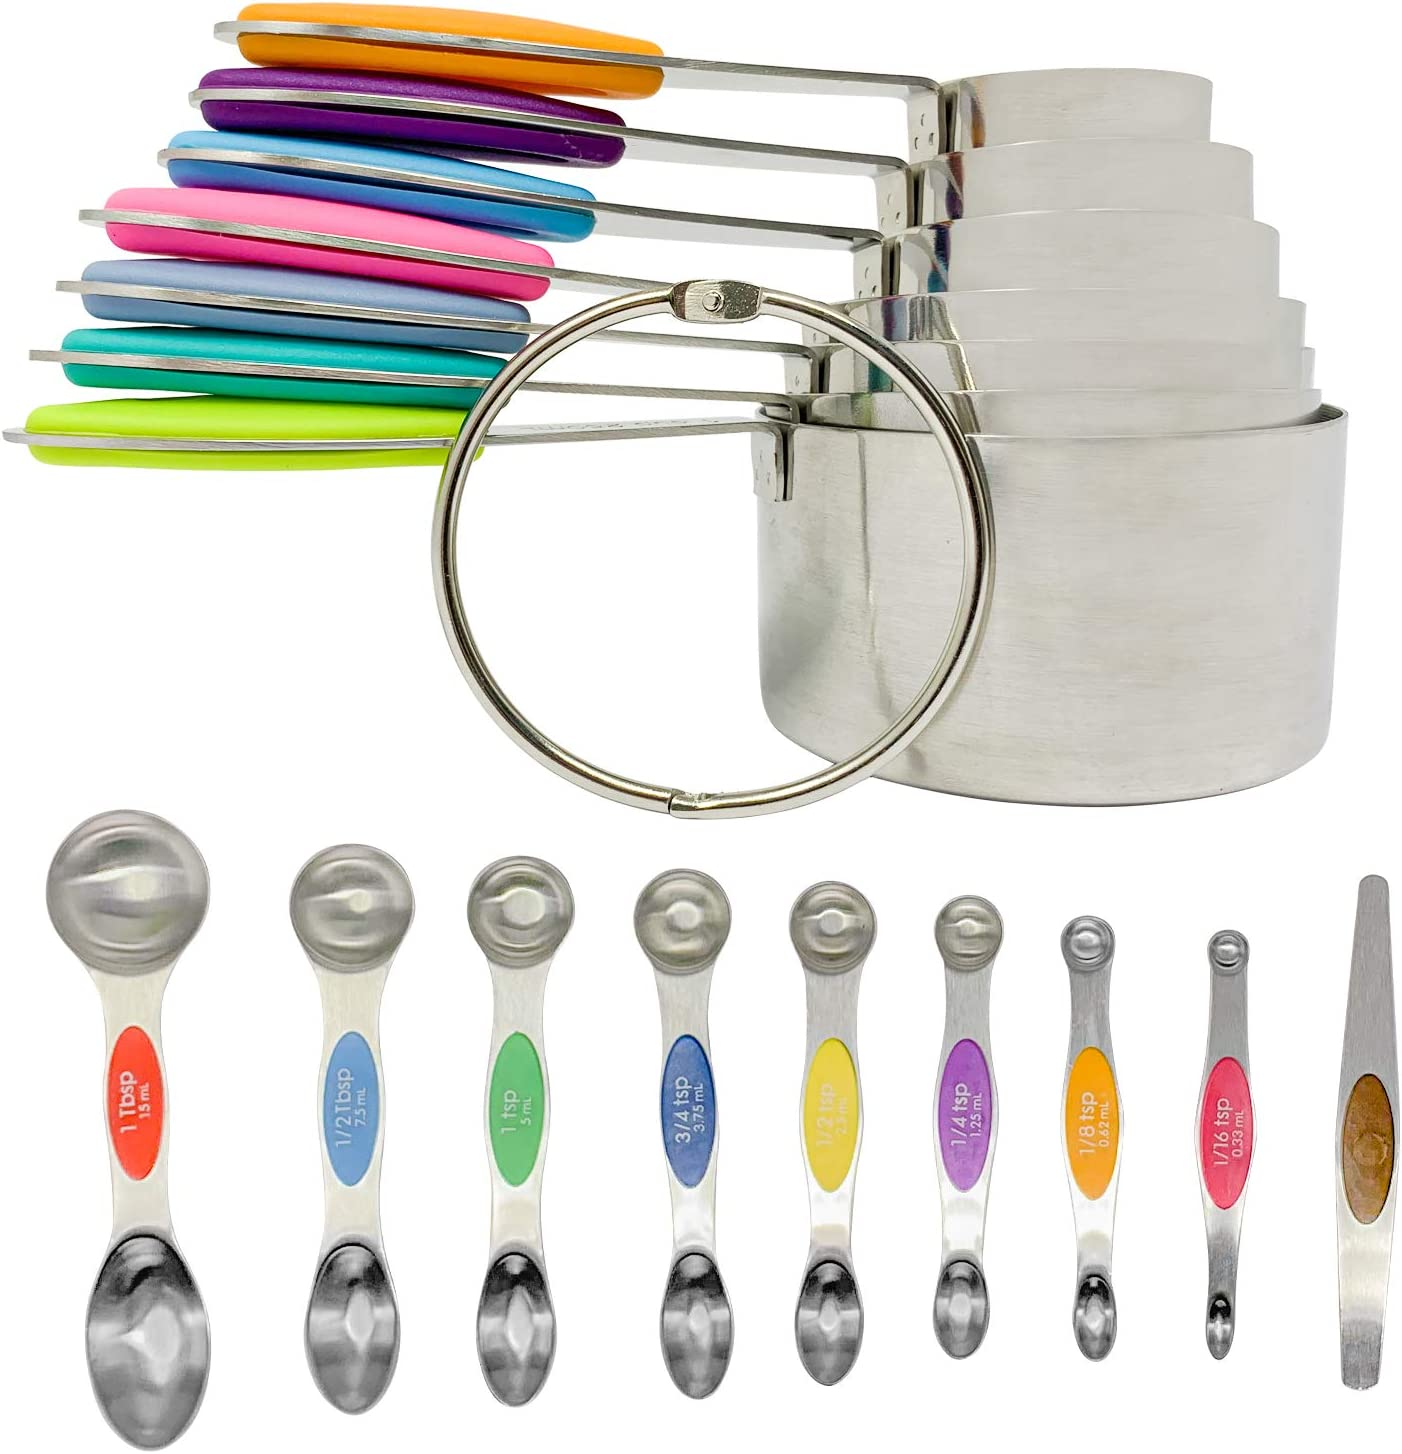 Measuring Cup Set with Magnetic Measuring Spoons by Bakeess – 8 Pieces Stackable Stainless Steel Measuring Cups for Liquids and Dry Ingredients – 7 Double Sided Tablespoons with Leveler